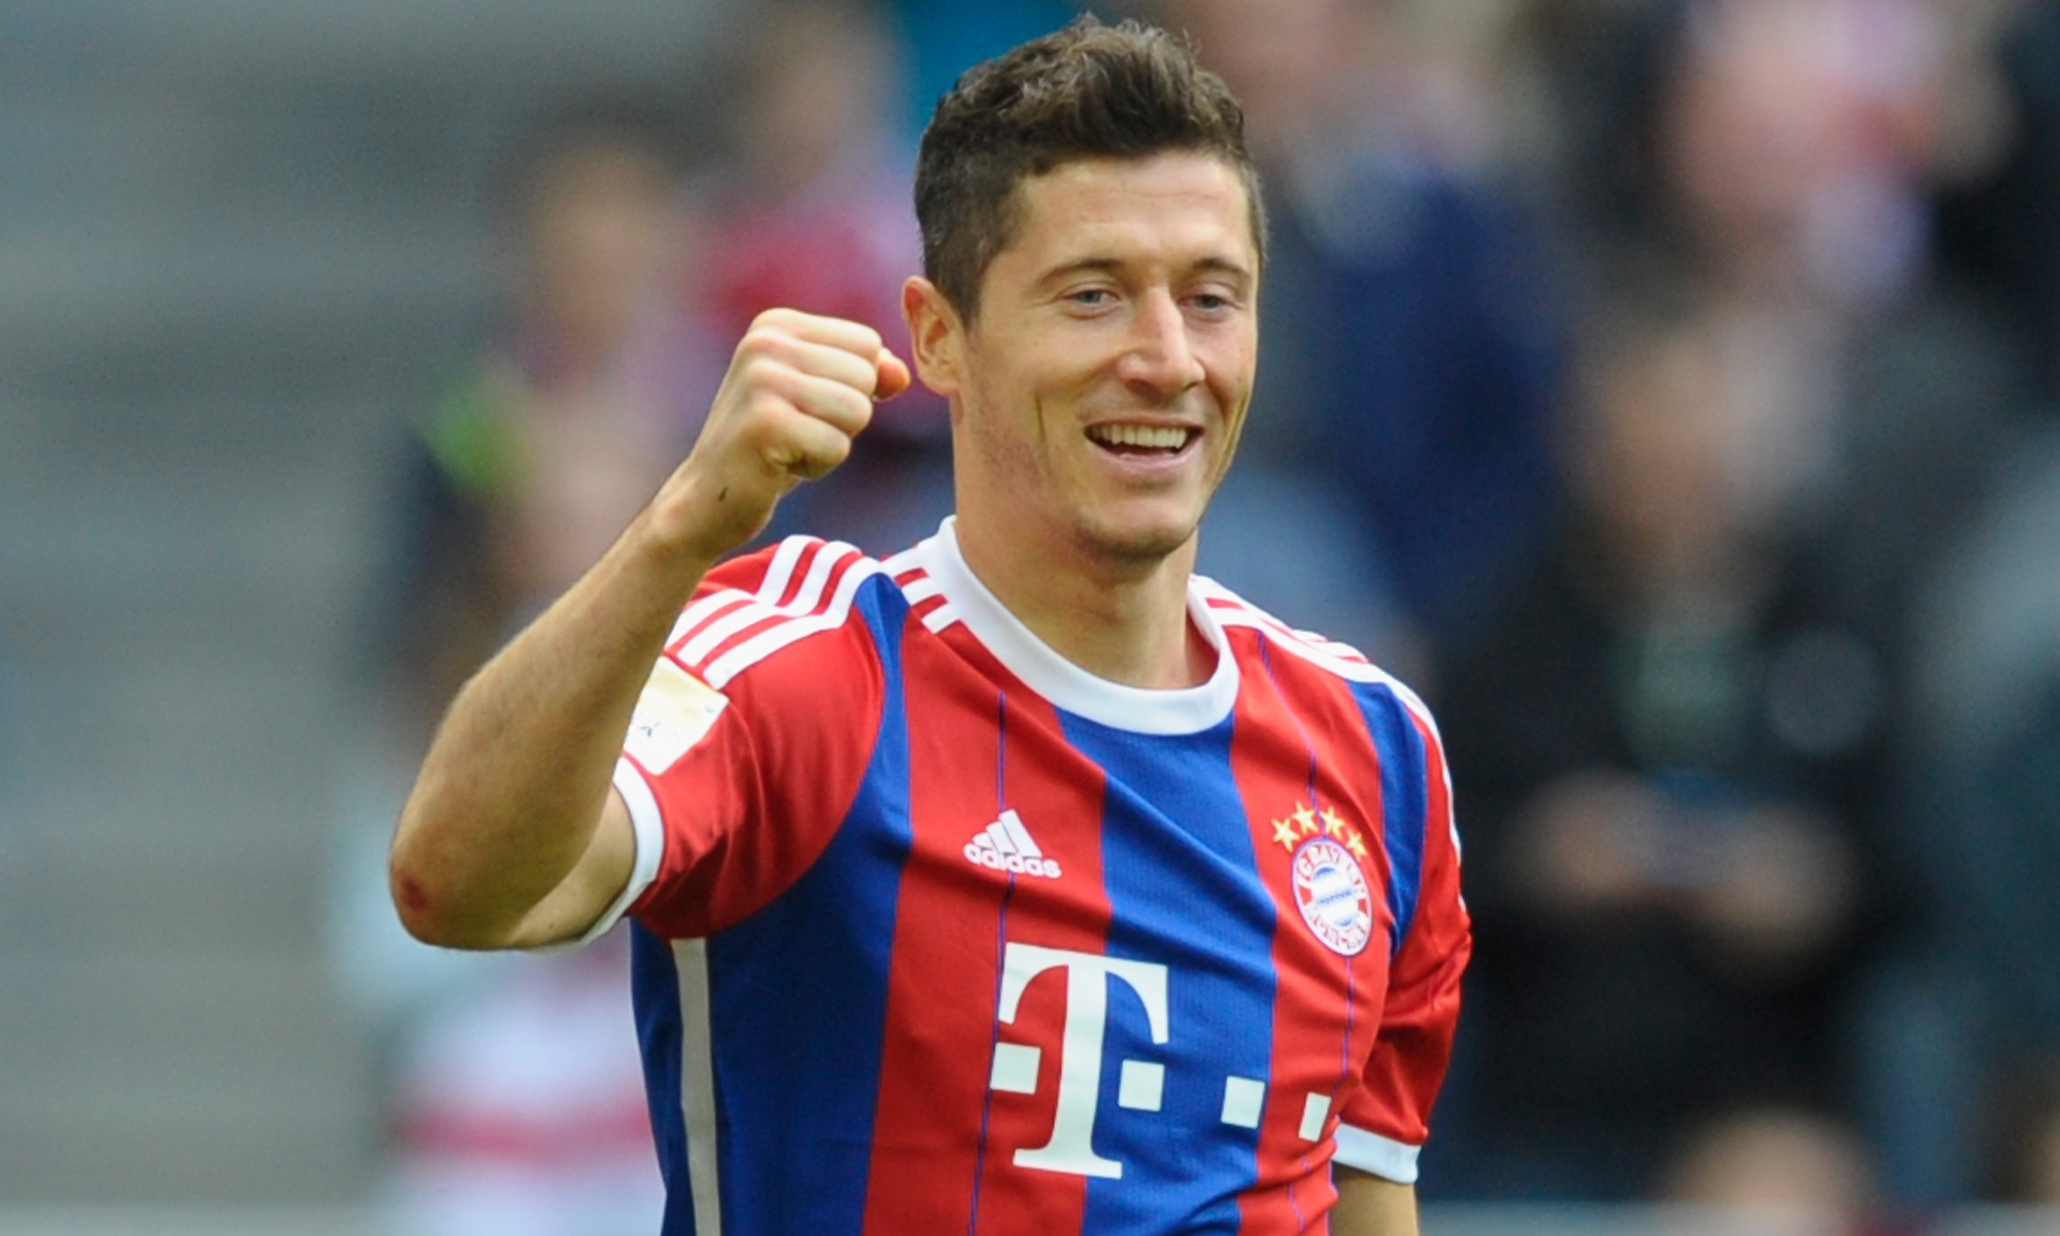 MUNICH, GERMANY - APRIL 11: Robert Lewandowski of Munich celebrates scoring his team's second goal during the Bundesliga match between FC Bayern Muenchen and Eintracht Frankfurt at Allianz Arena on April 11, 2015 in Munich, Germany. (Photo by Lennart Preiss/Bongarts/Getty Images)